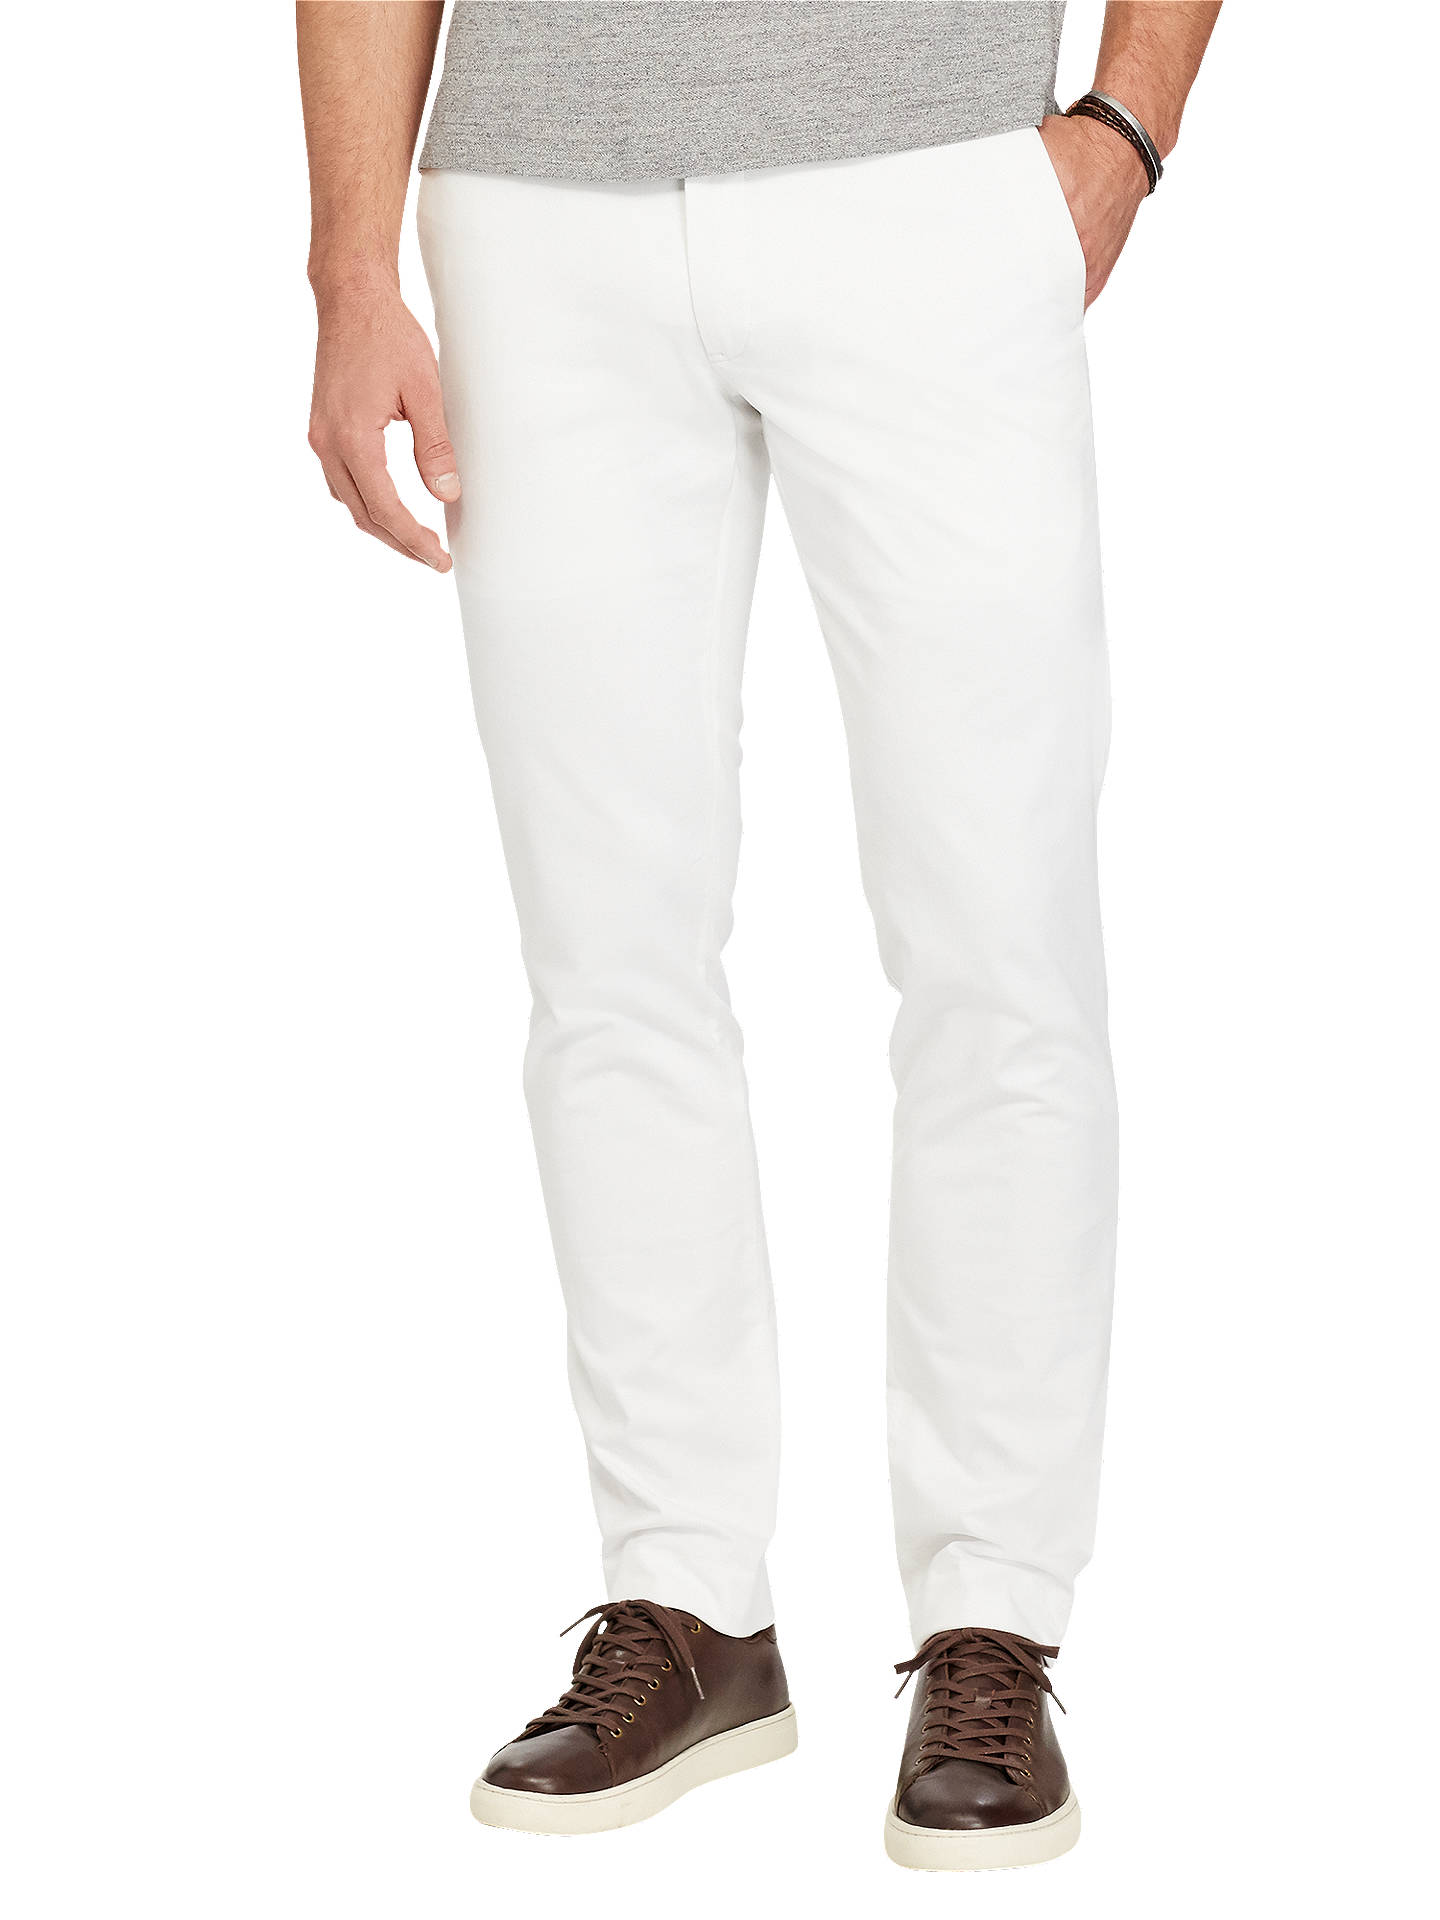 BuyPolo Ralph Lauren Hudson Slim Fit Stretch Cotton Trousers, White, 32R Online at johnlewis.com